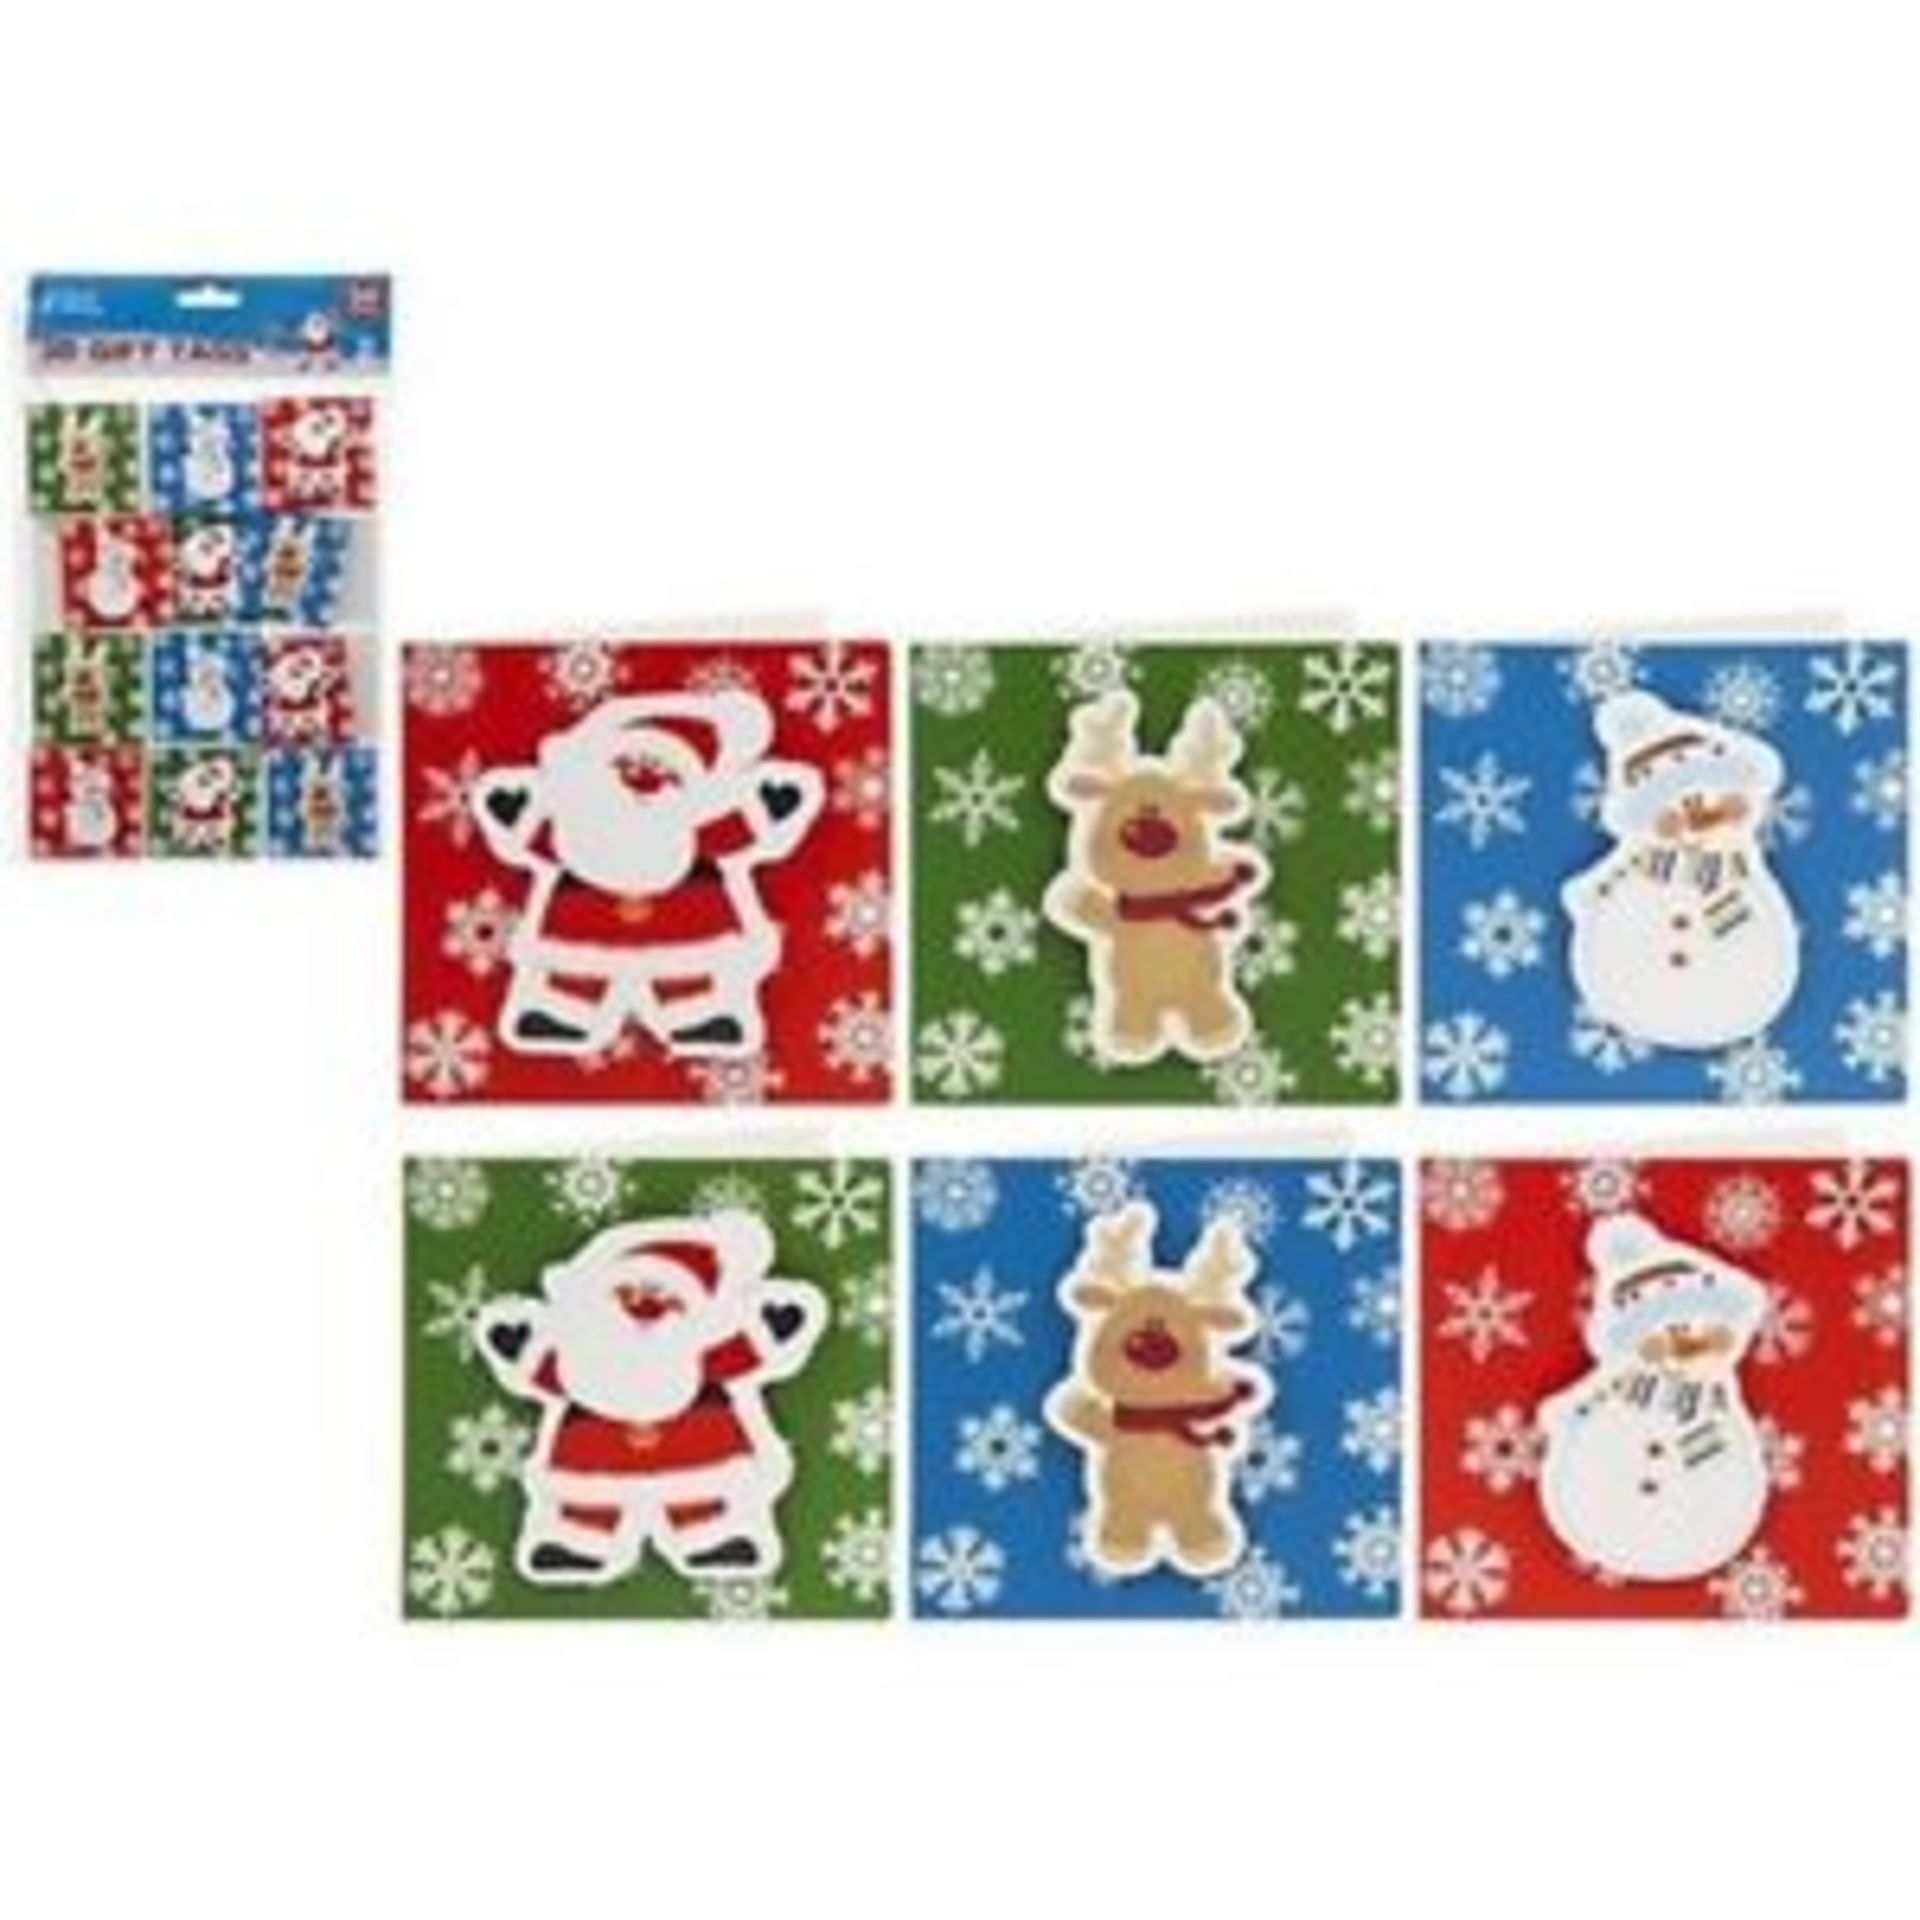 Lot 18213 - V Brand New Three Packs Of 24 3D Gift Tags - Four Assorted Sets